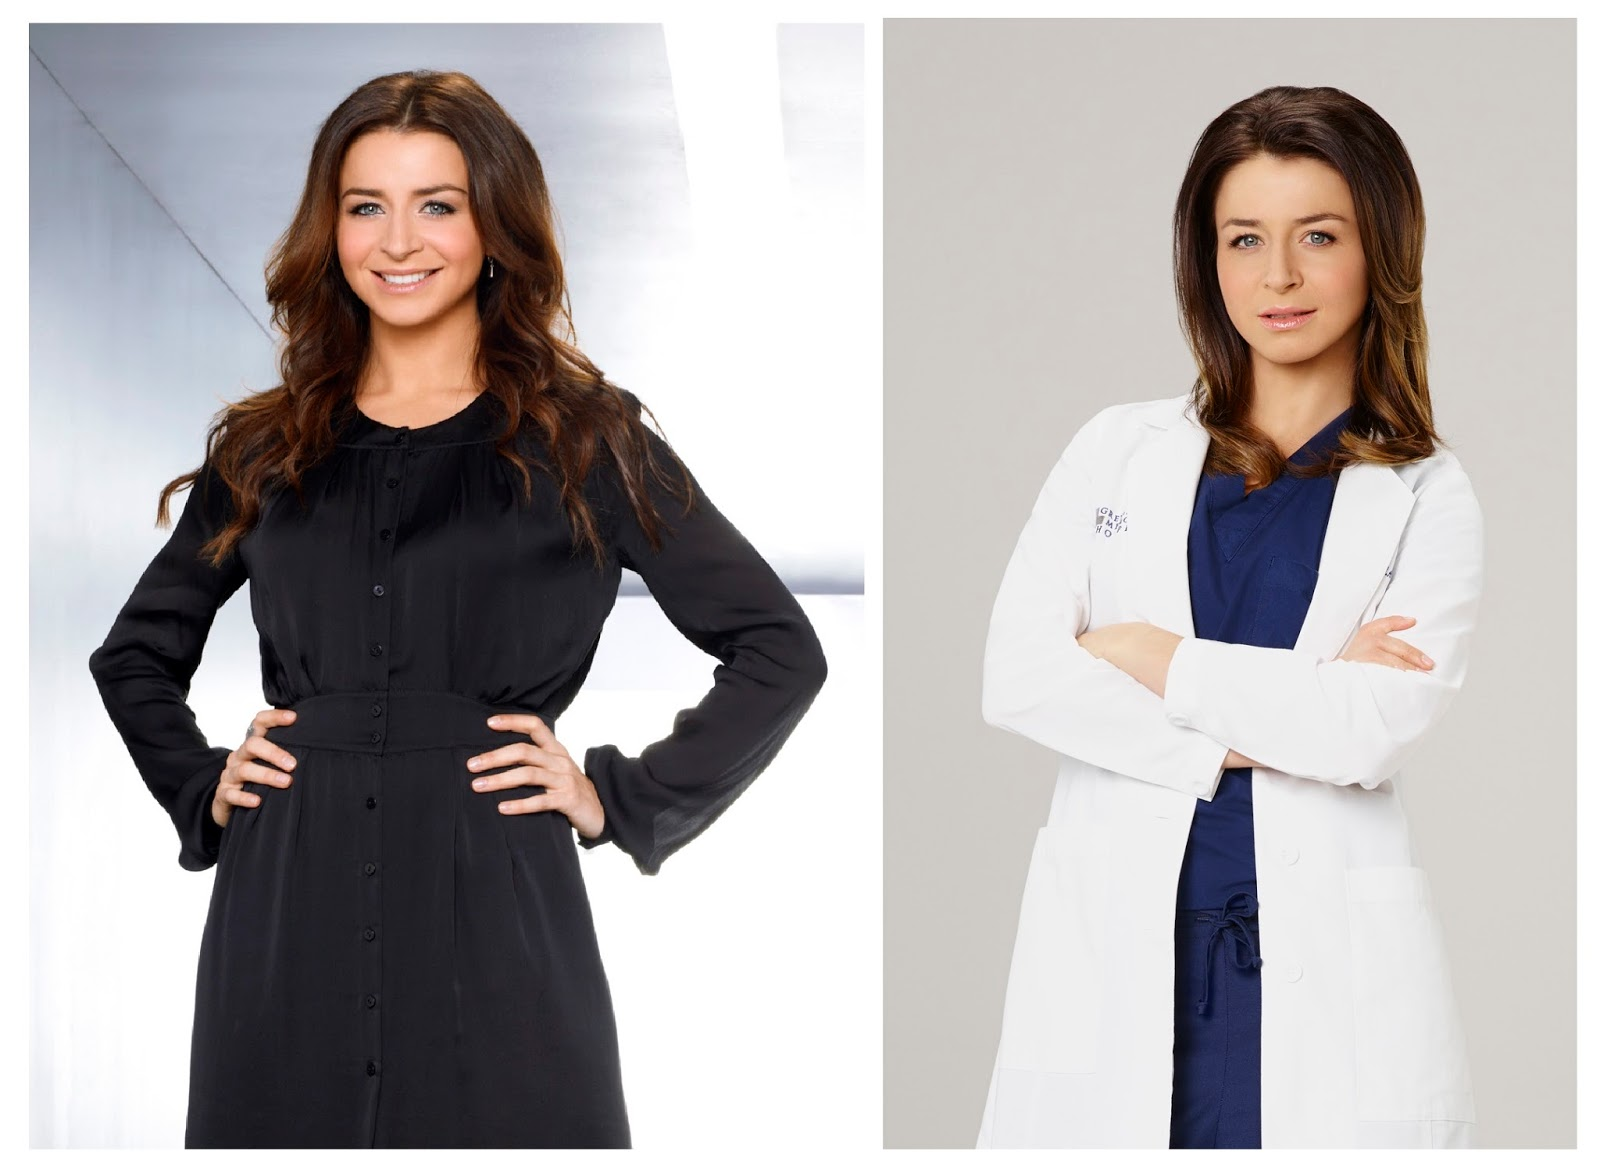 TV Talk: AMELIA SHEPHERD: 11 MUST-WATCH \'PRIVATE PRACTICE\' EPISODES ...